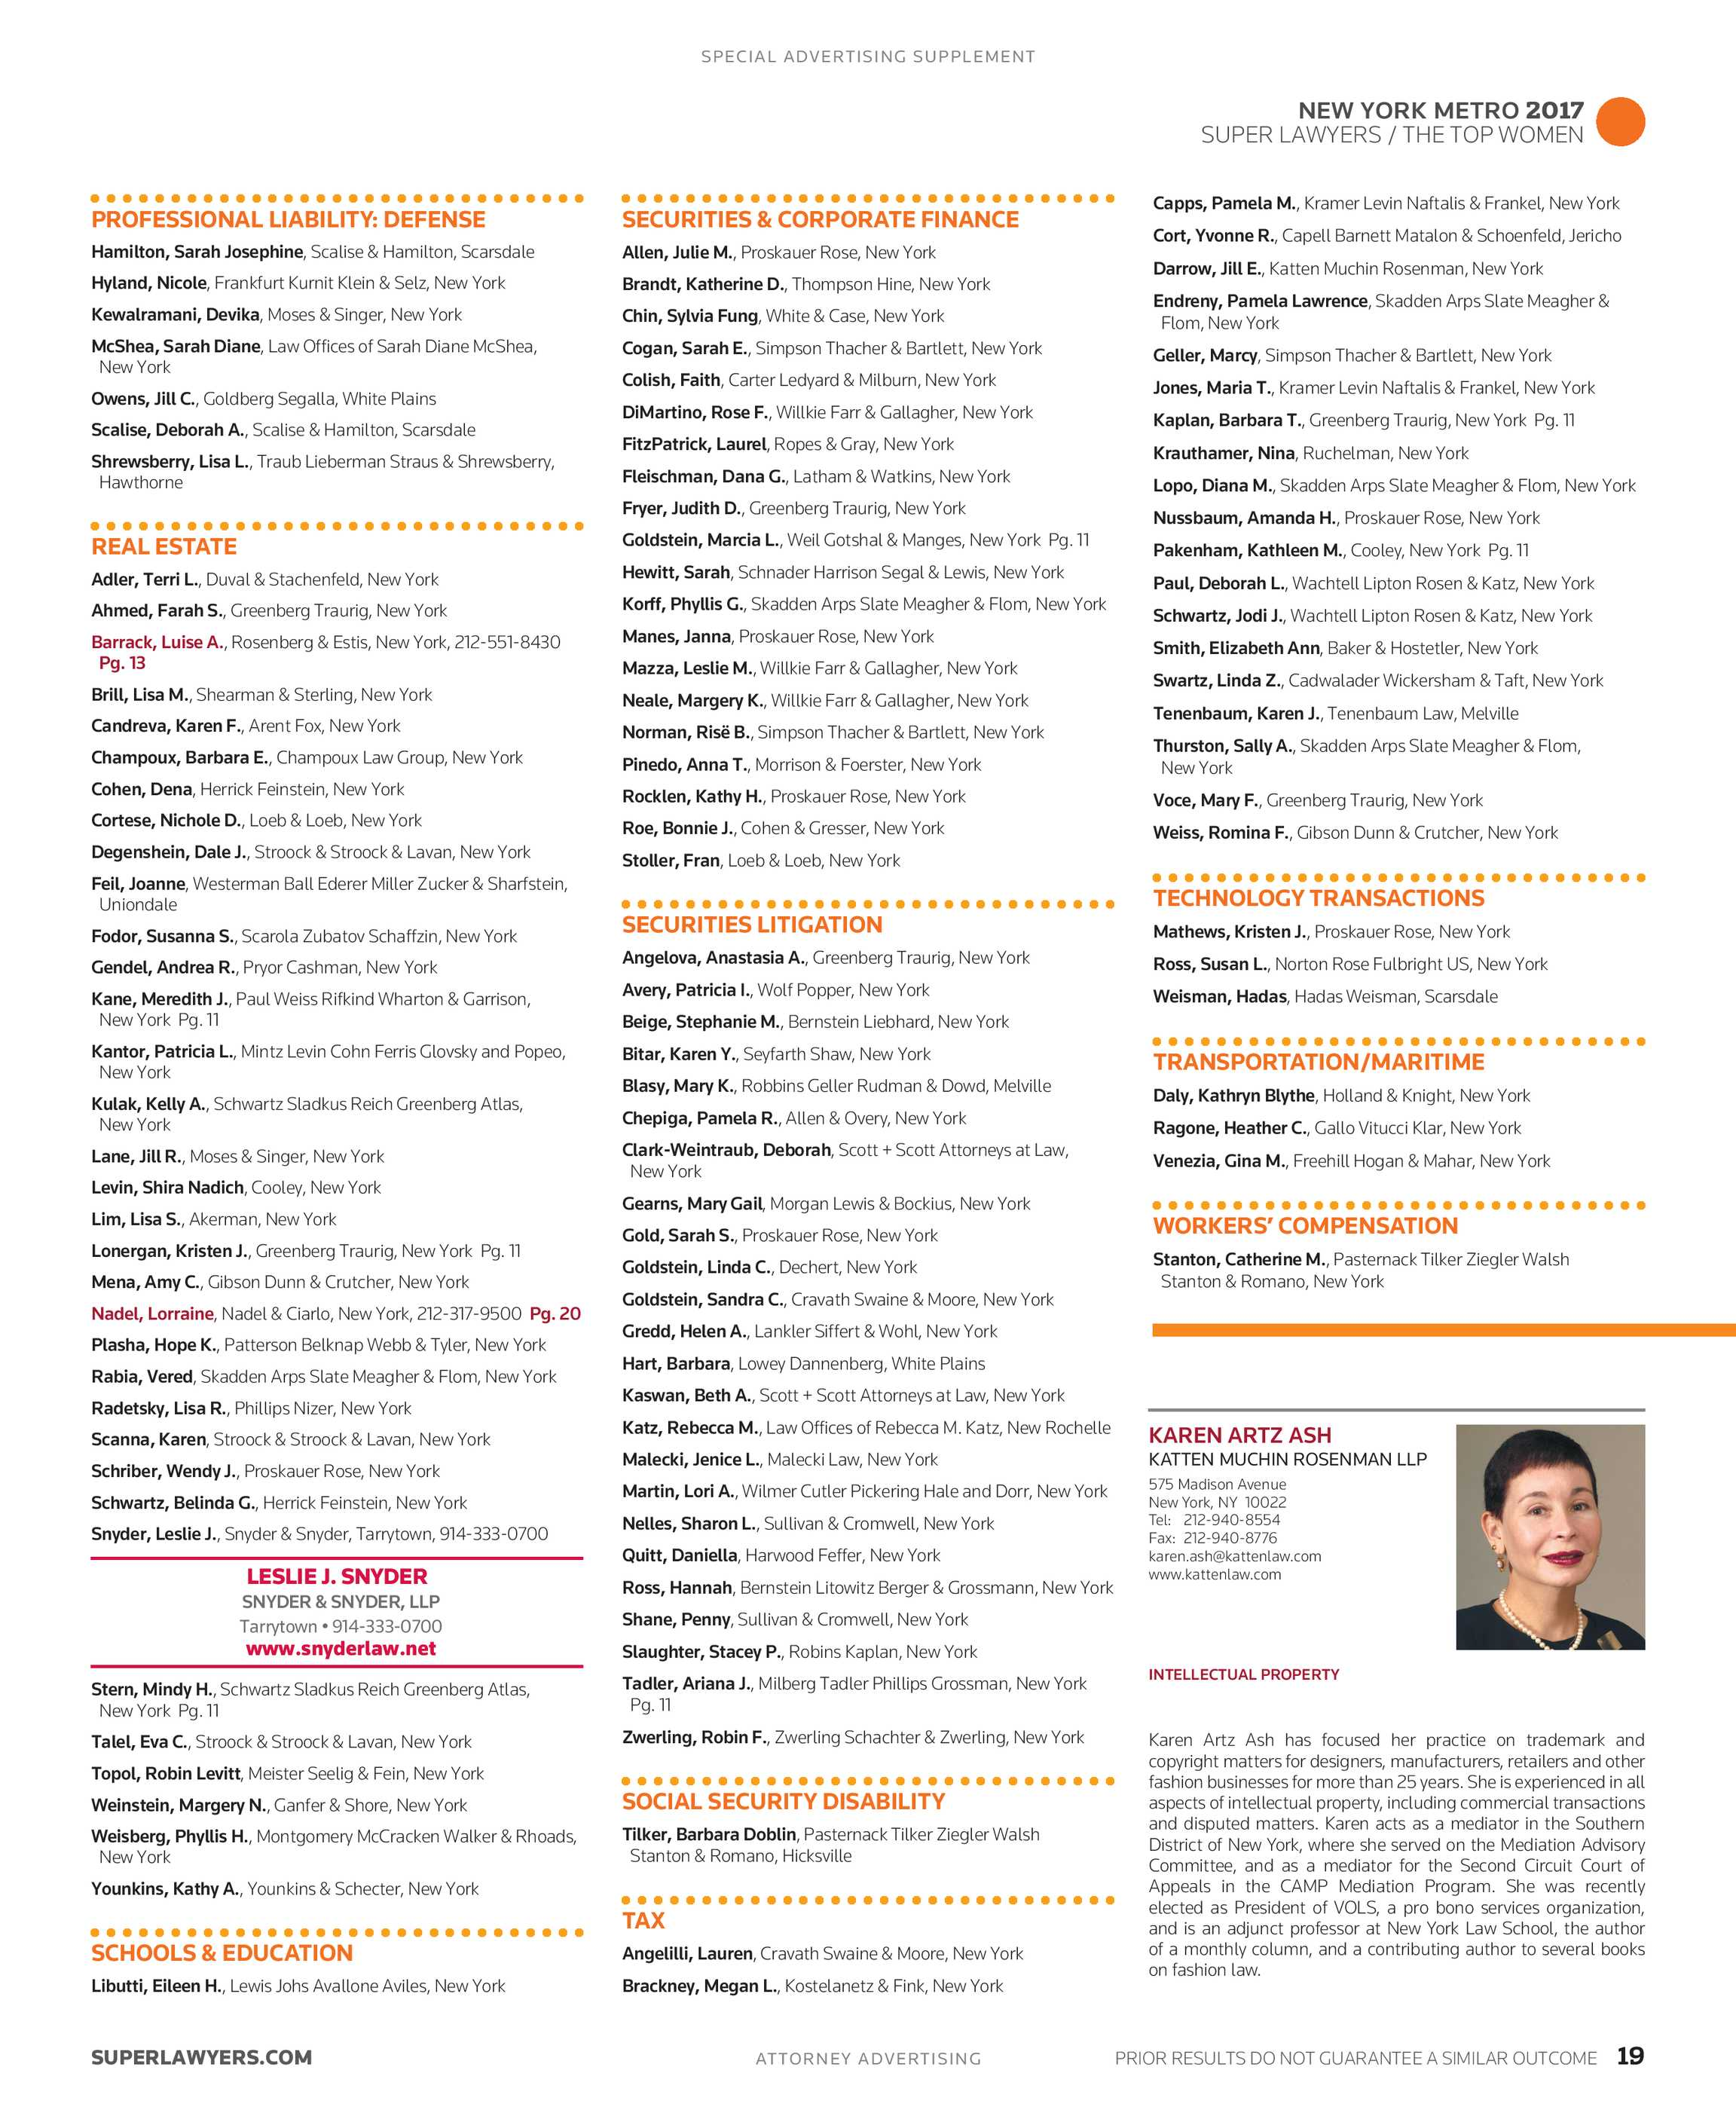 7e7fd22bea Super Lawyers - The Top Women Attorneys in New York Metro 2018 - page 19